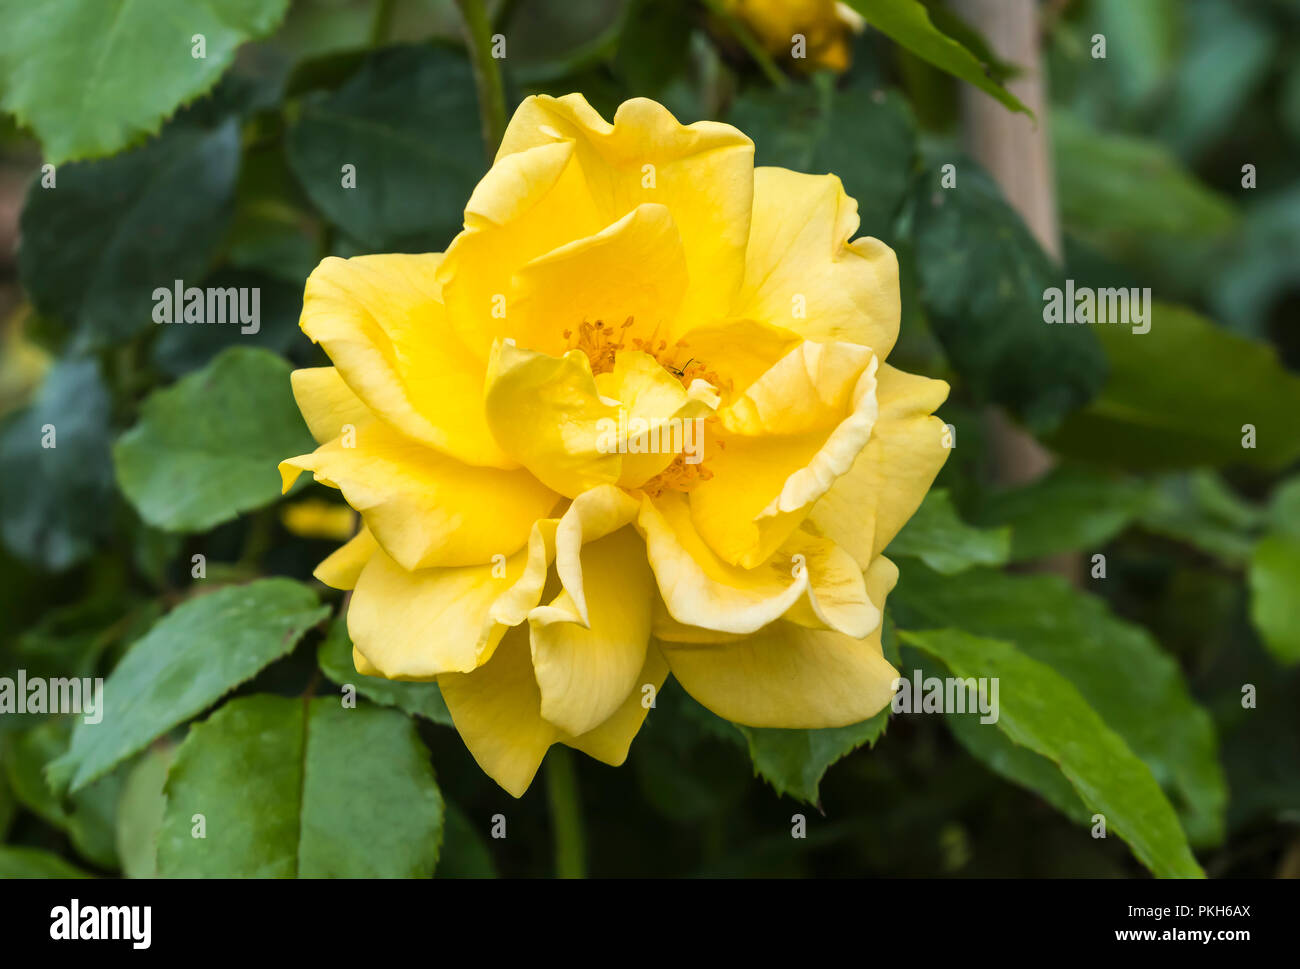 Single golden yellow flower head of the Standard Tree Rose 'Precious Gold' (Rosa floribunda 'Precious Gold') flowering in Autumn in the UK. - Stock Image